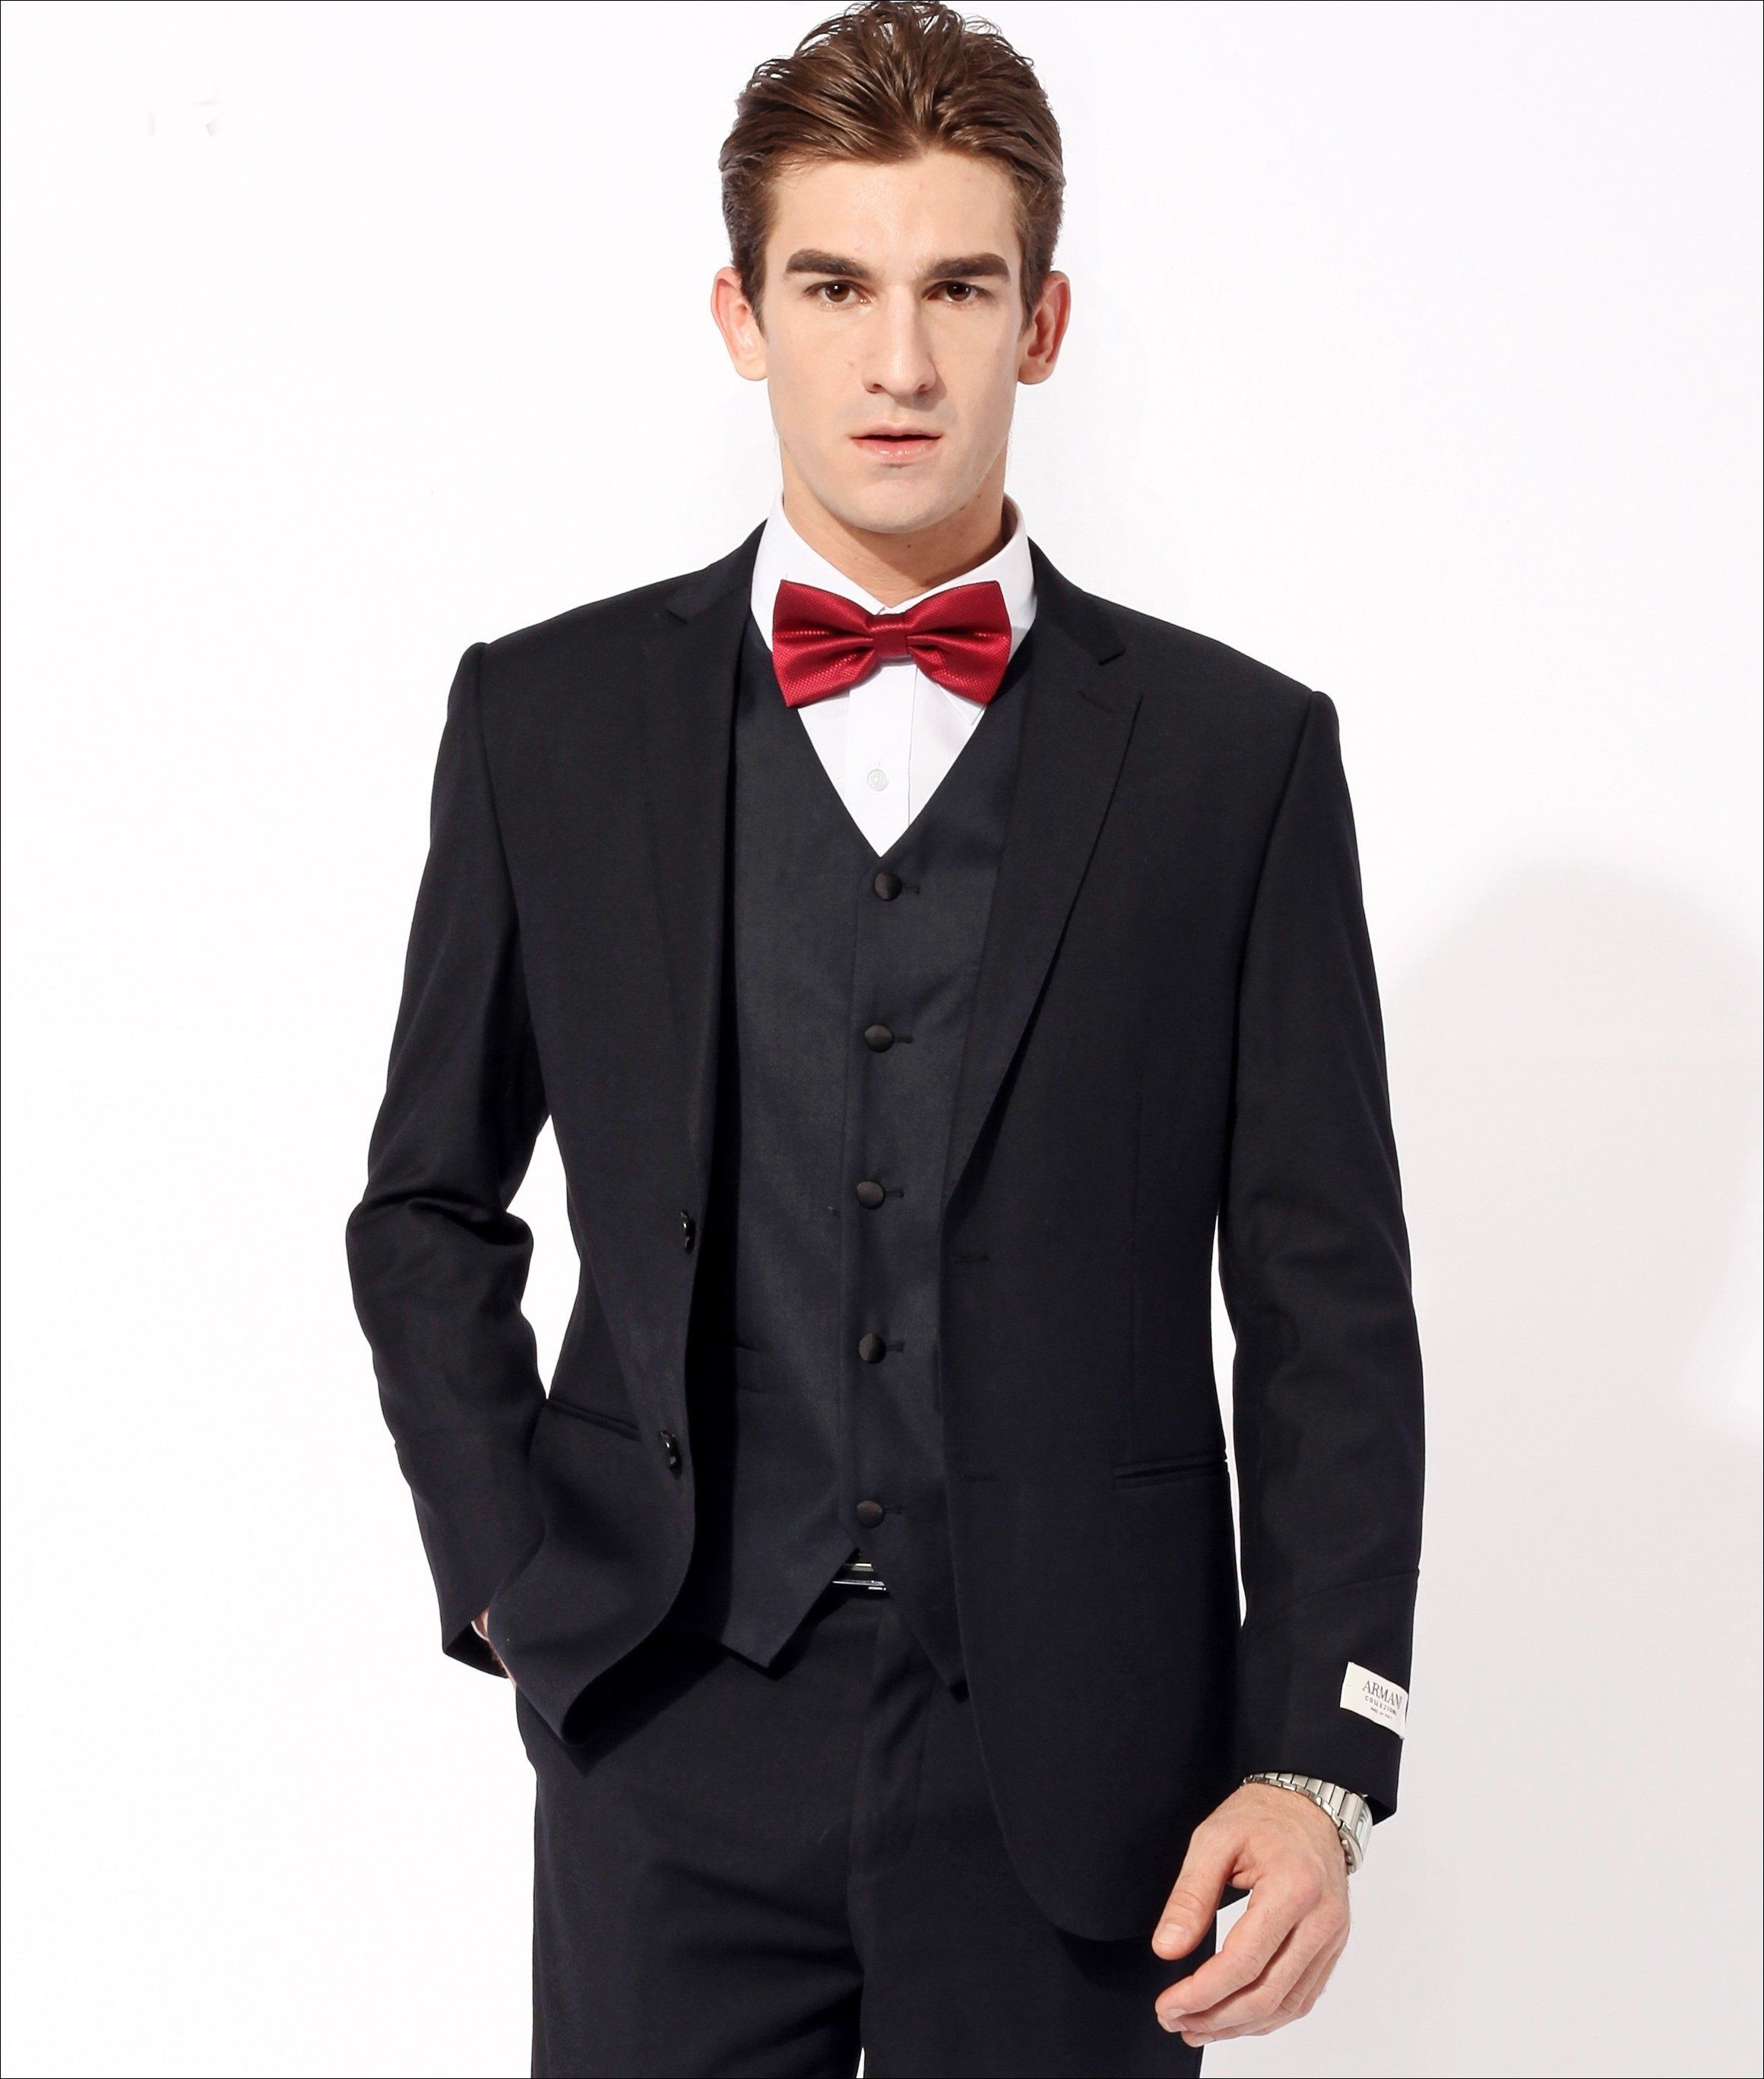 man in black suit with red bow tie